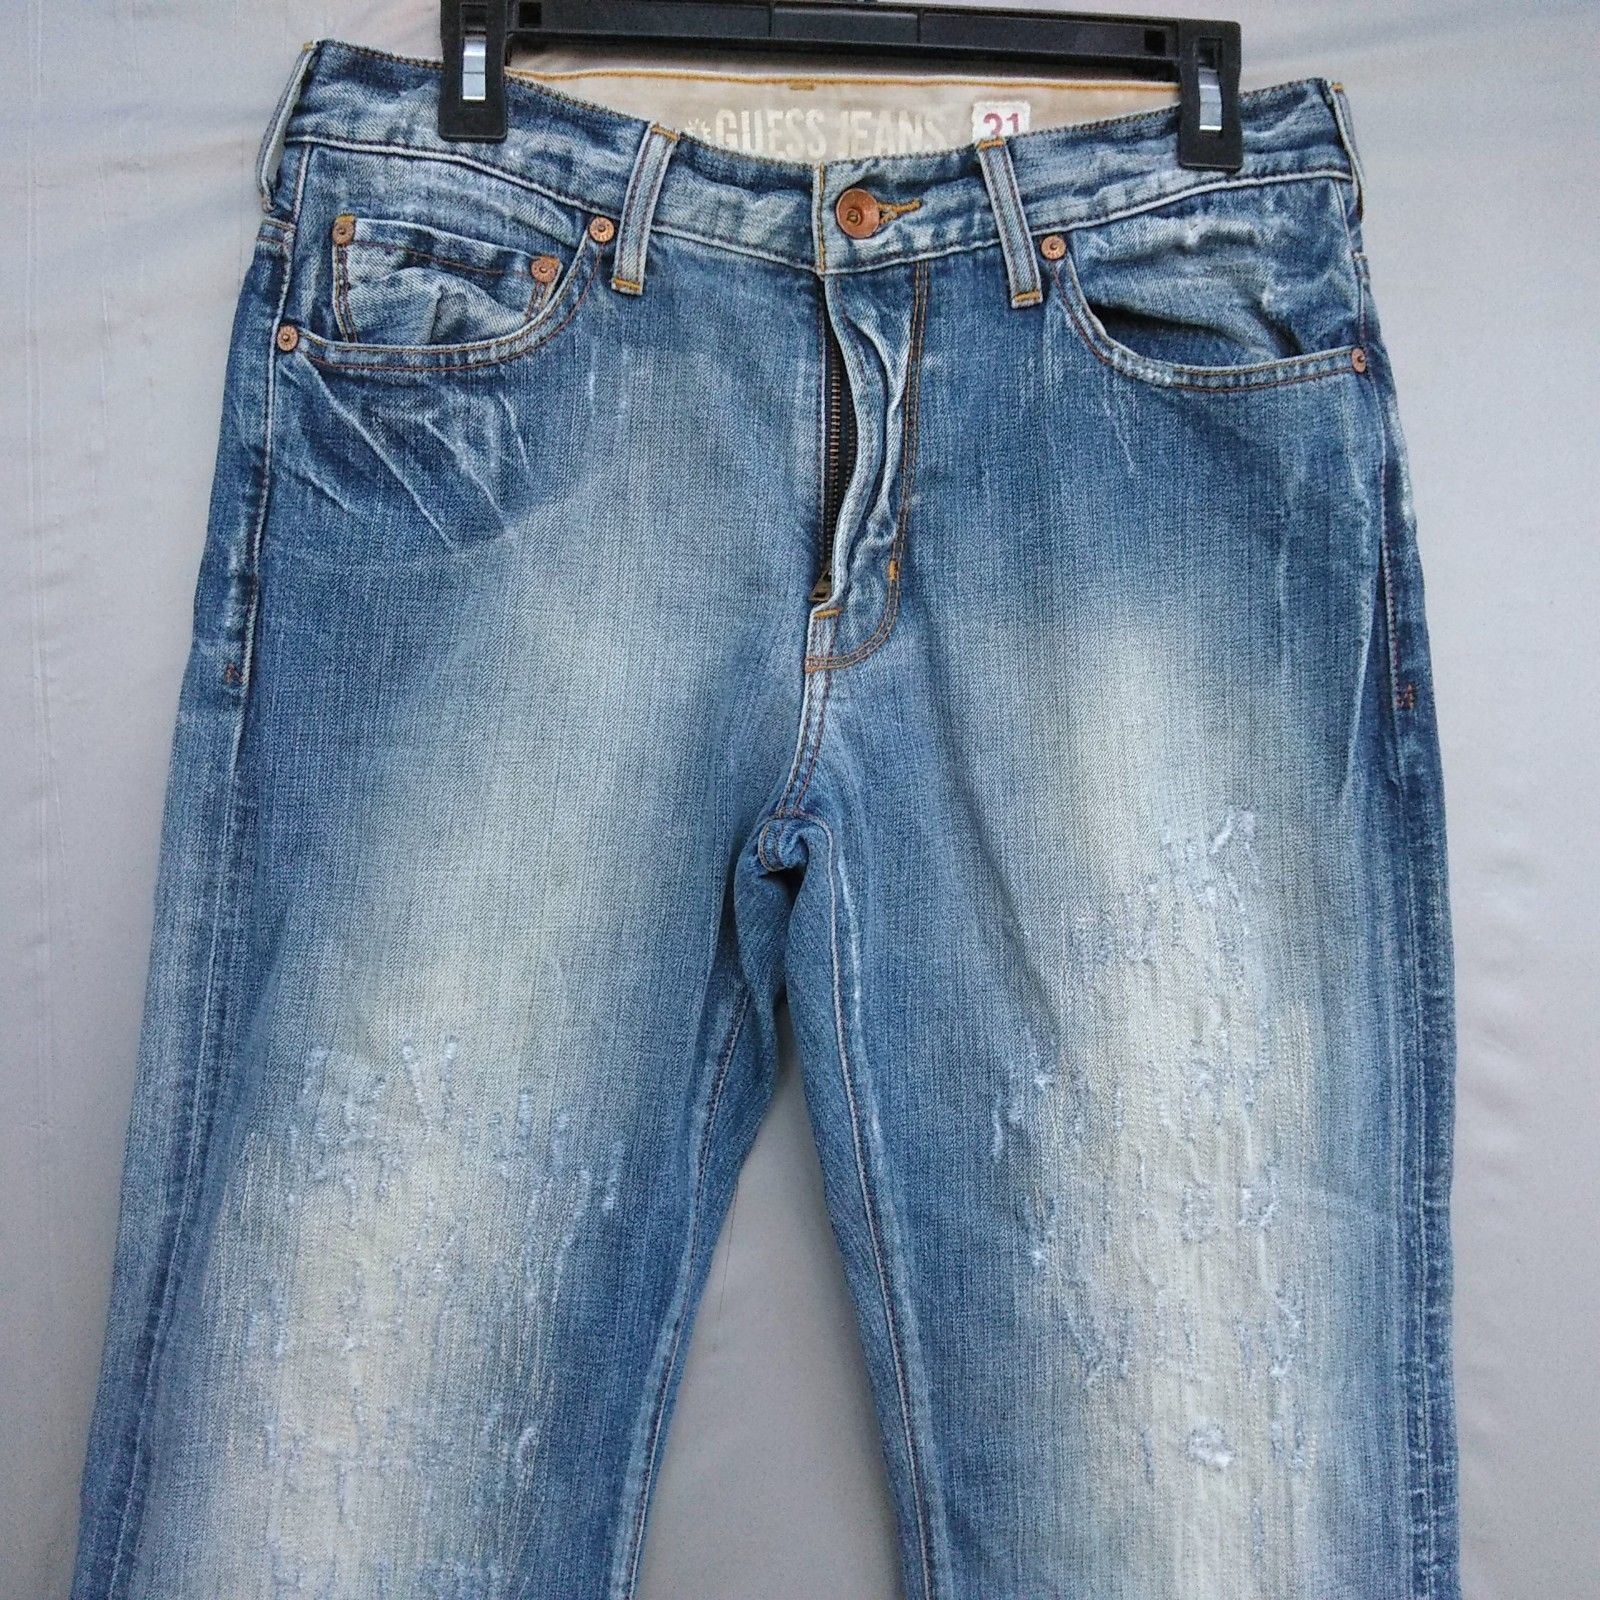 Guess Slim Straight Leg Jeans Men/'s Size 34 X 30 Low Rise Dark Distressed Wash